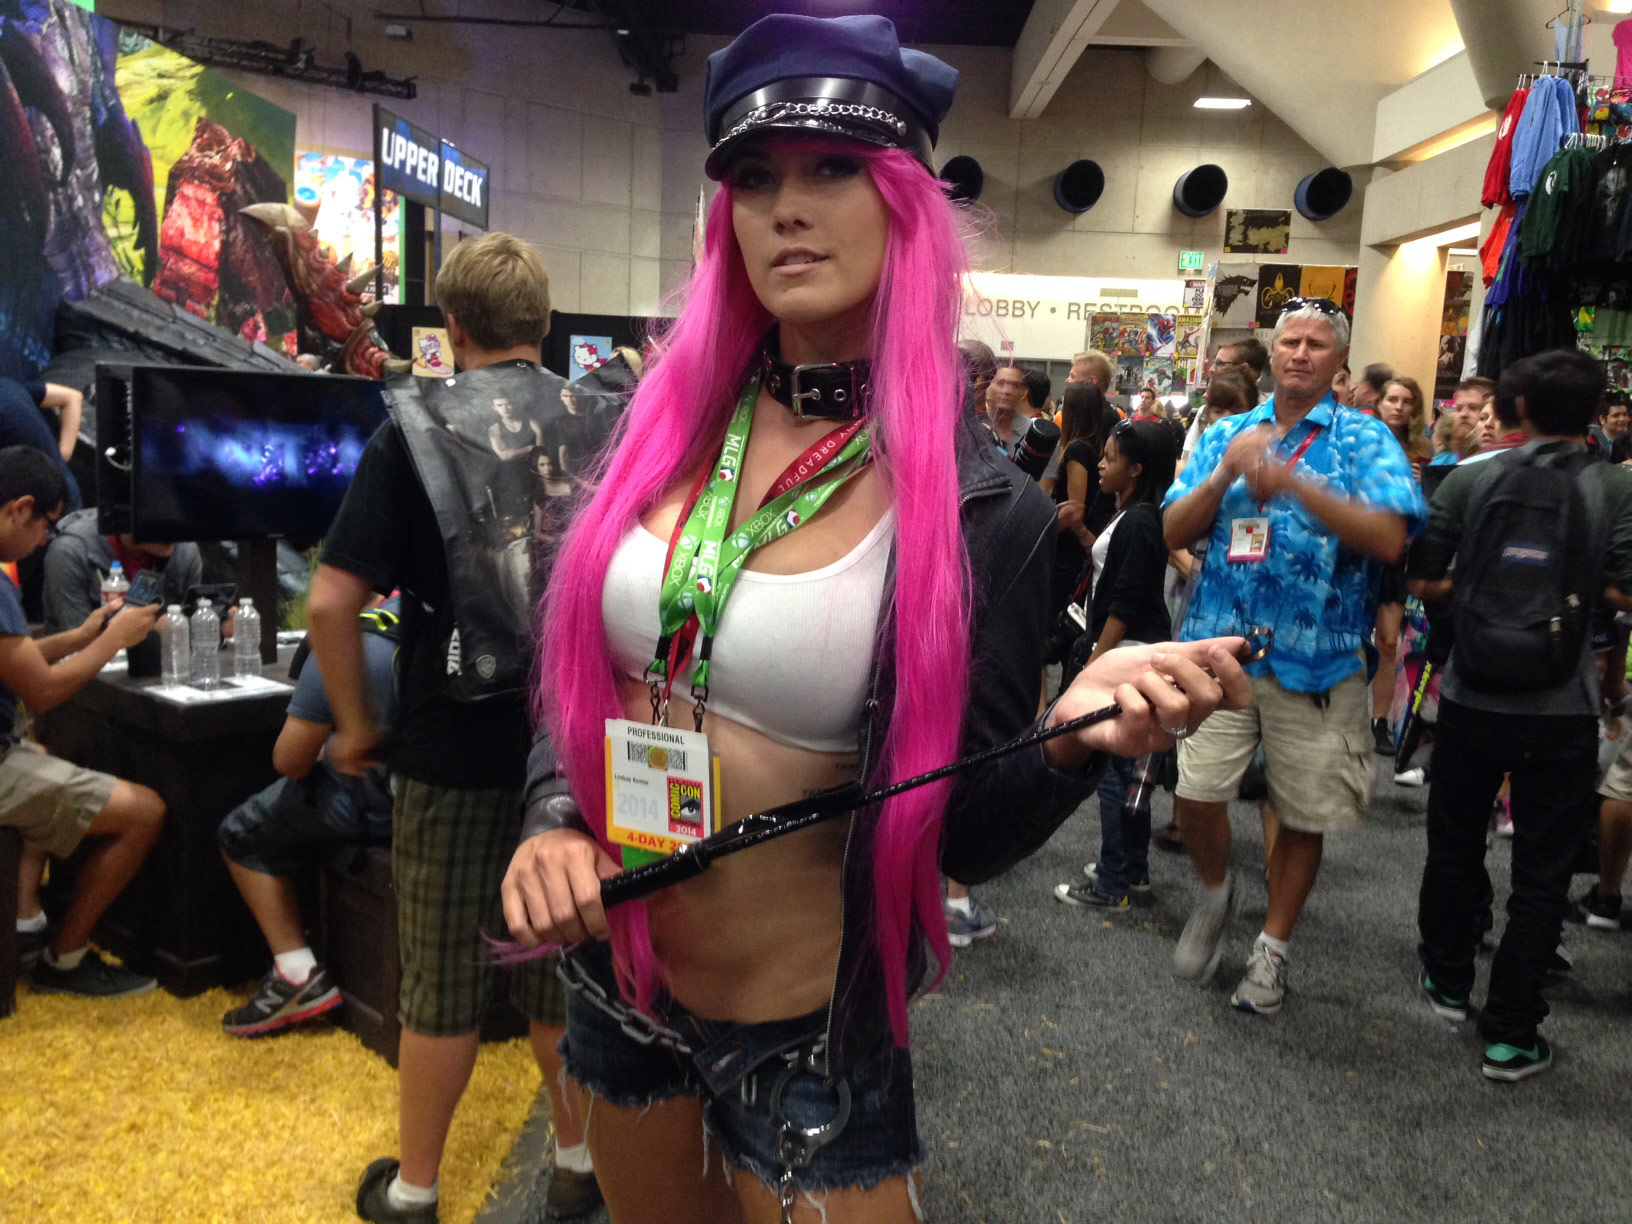 Pictures Of Cool Cars >> San Diego Comic-Con fighting game related cosplay, photo #1